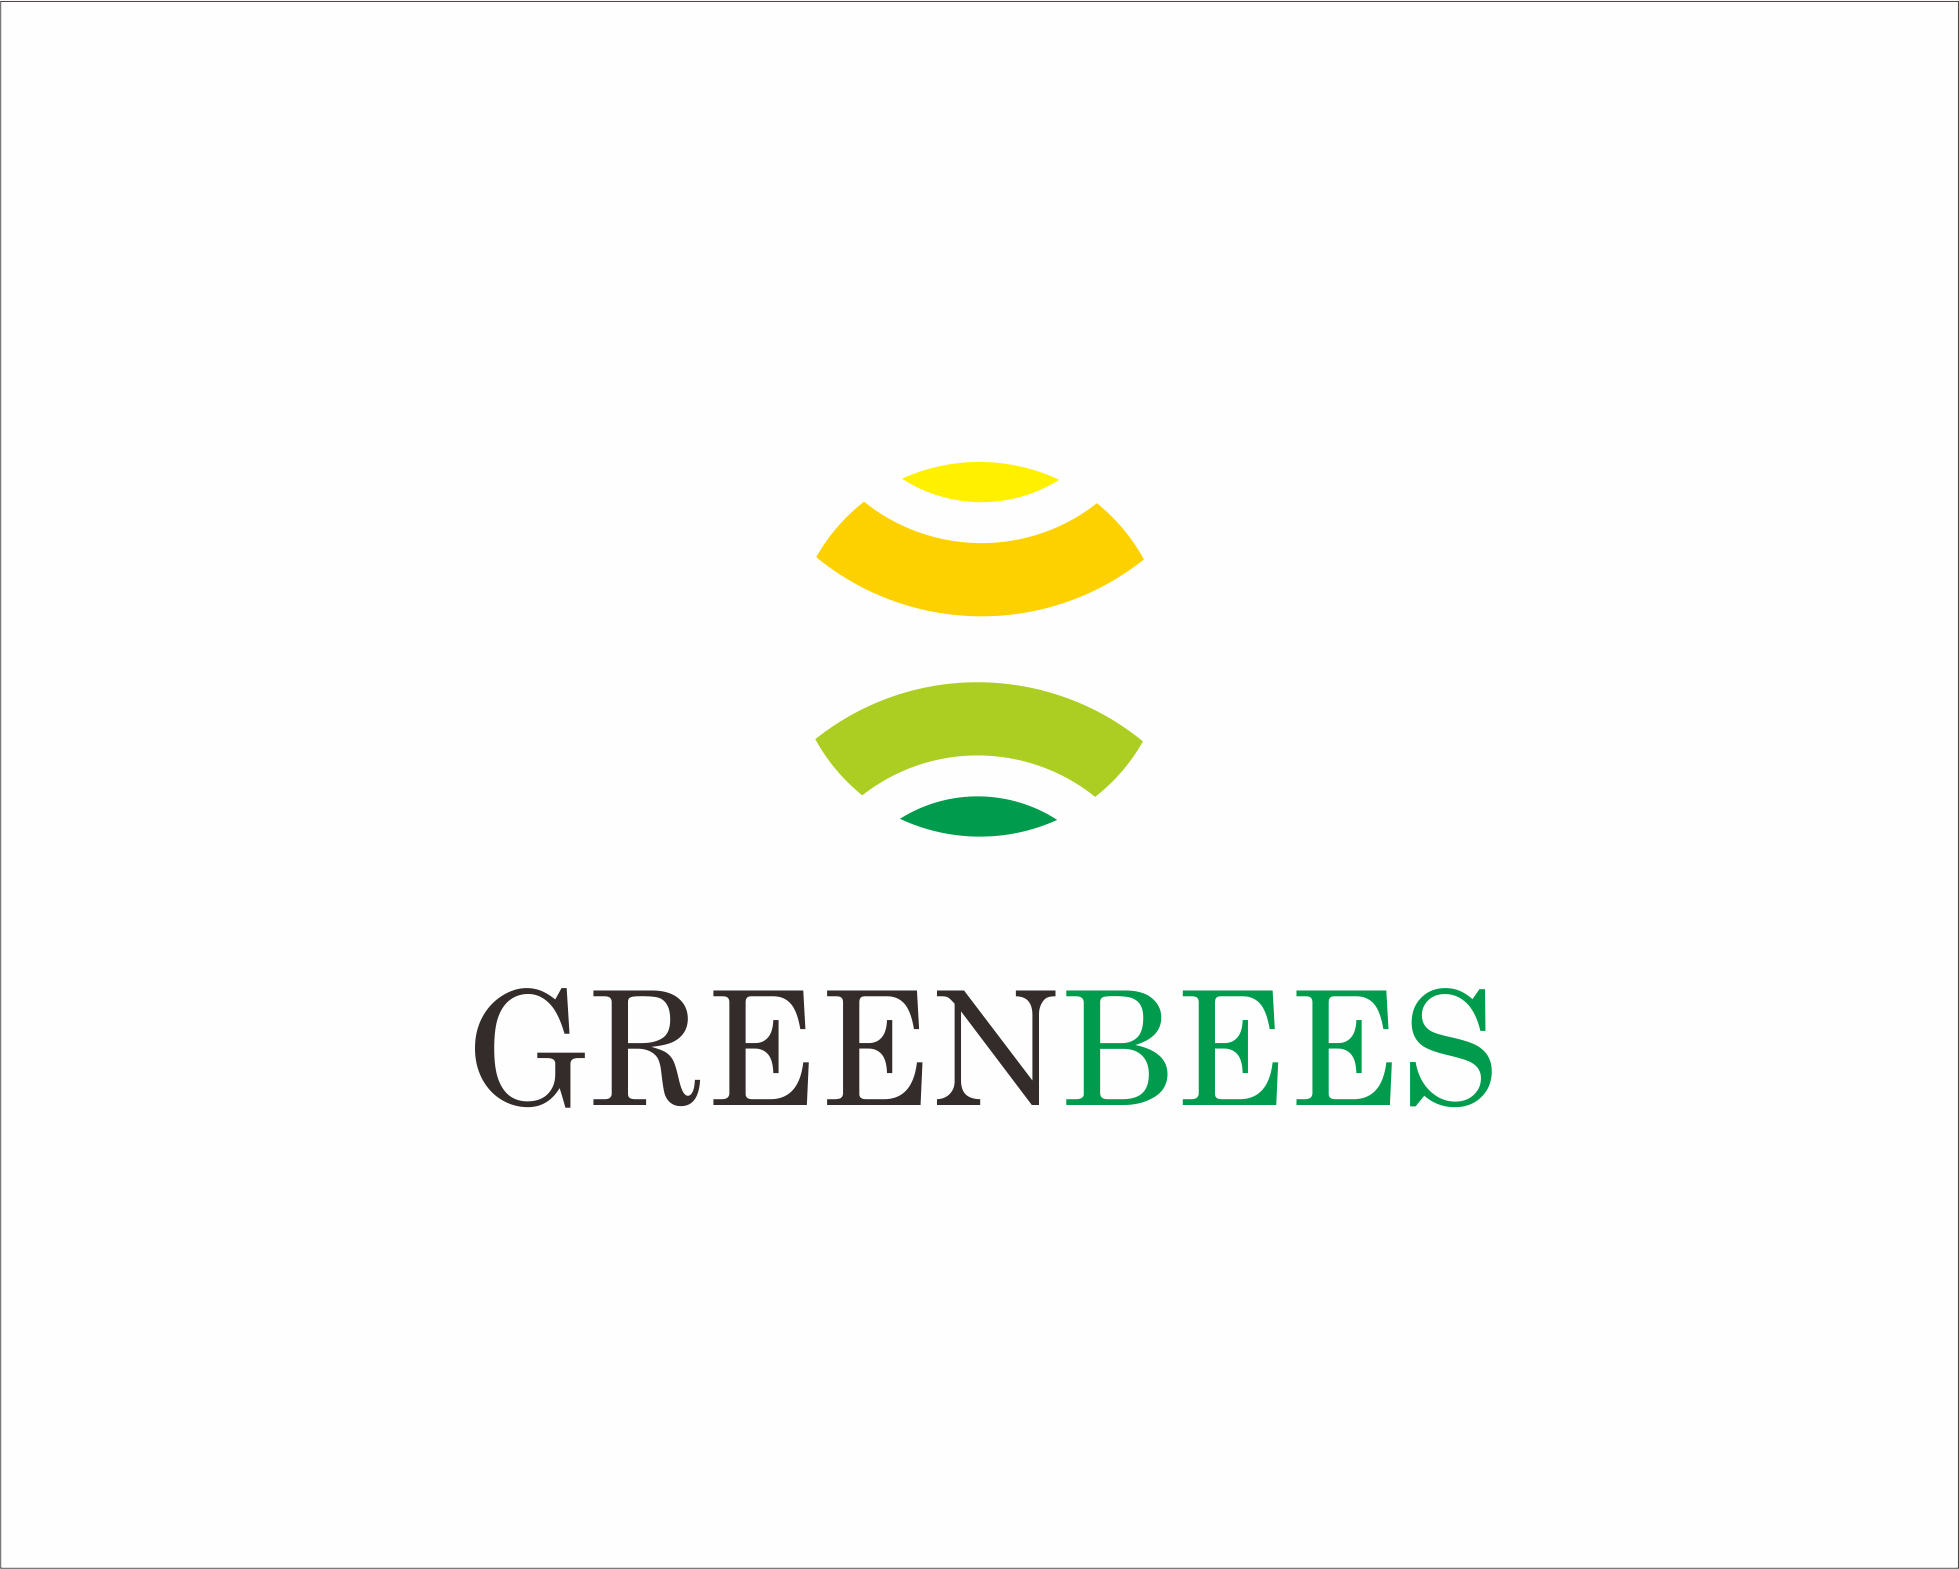 Logo Design by Armada Jamaluddin - Entry No. 366 in the Logo Design Contest Greenbees Logo Design.